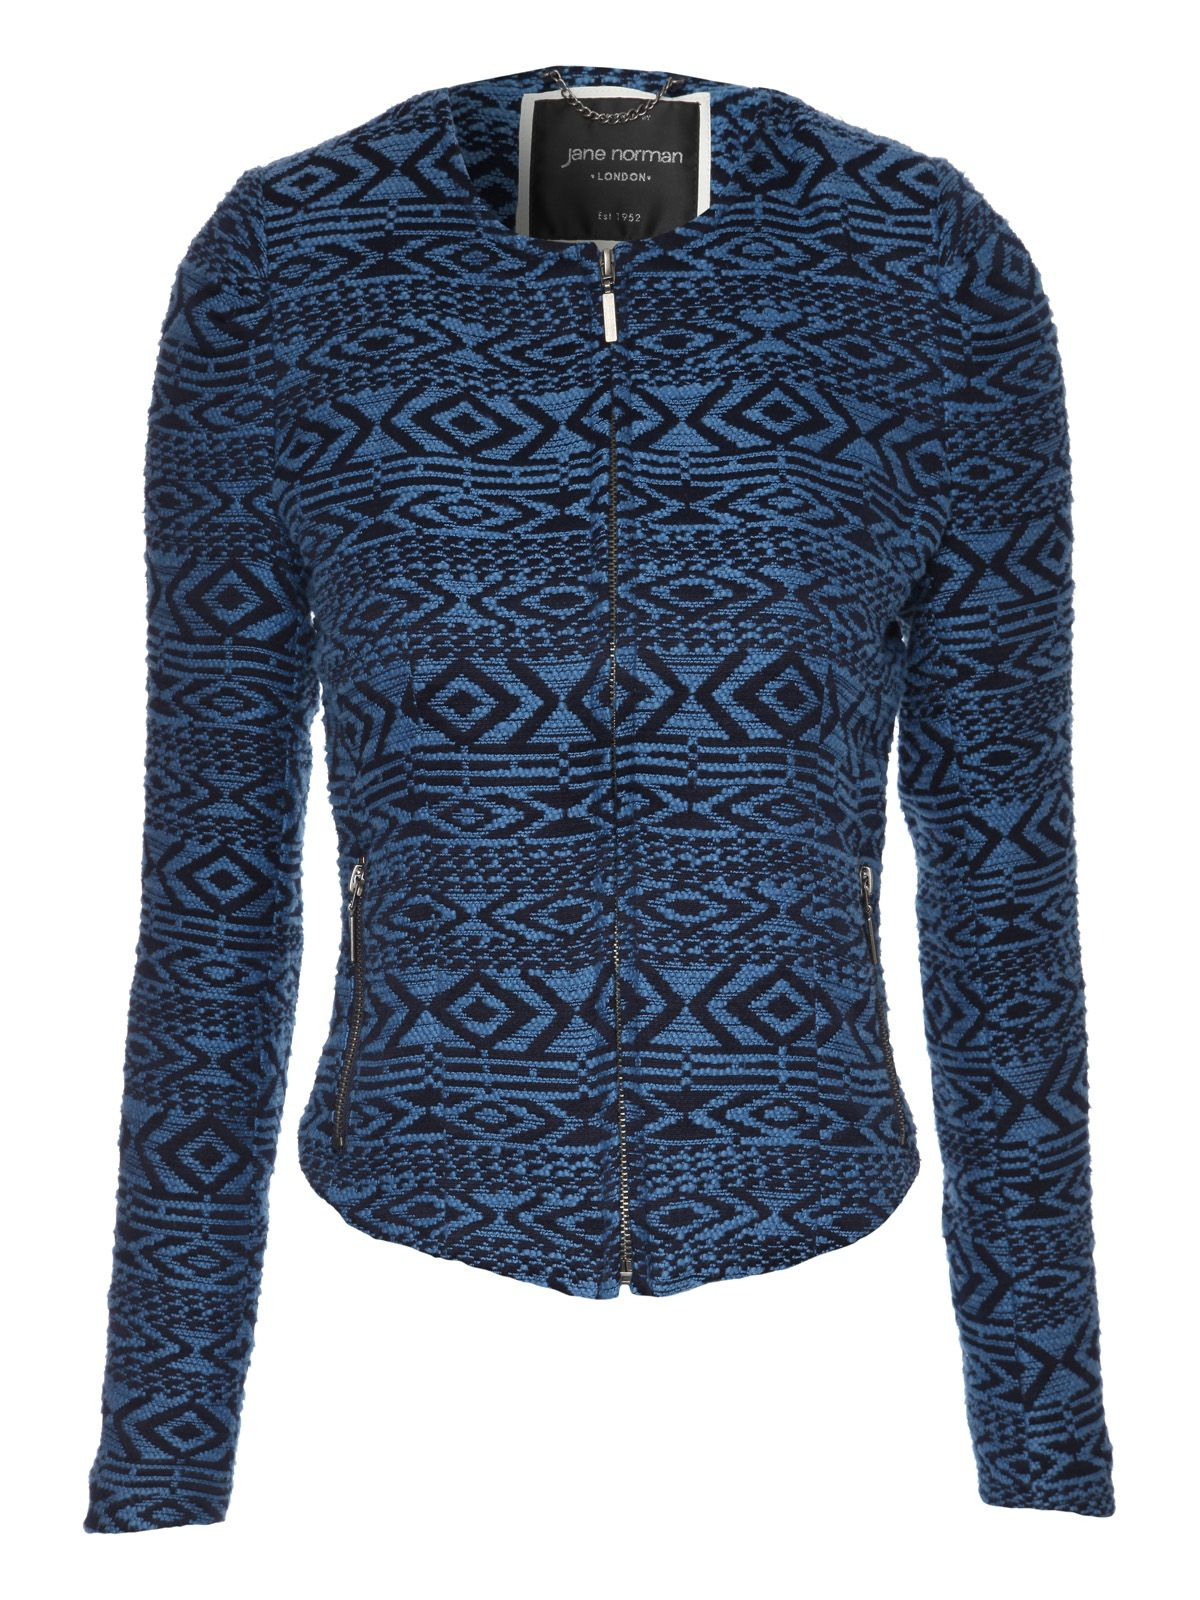 Tribal jacquard zip front long sleeve jacket